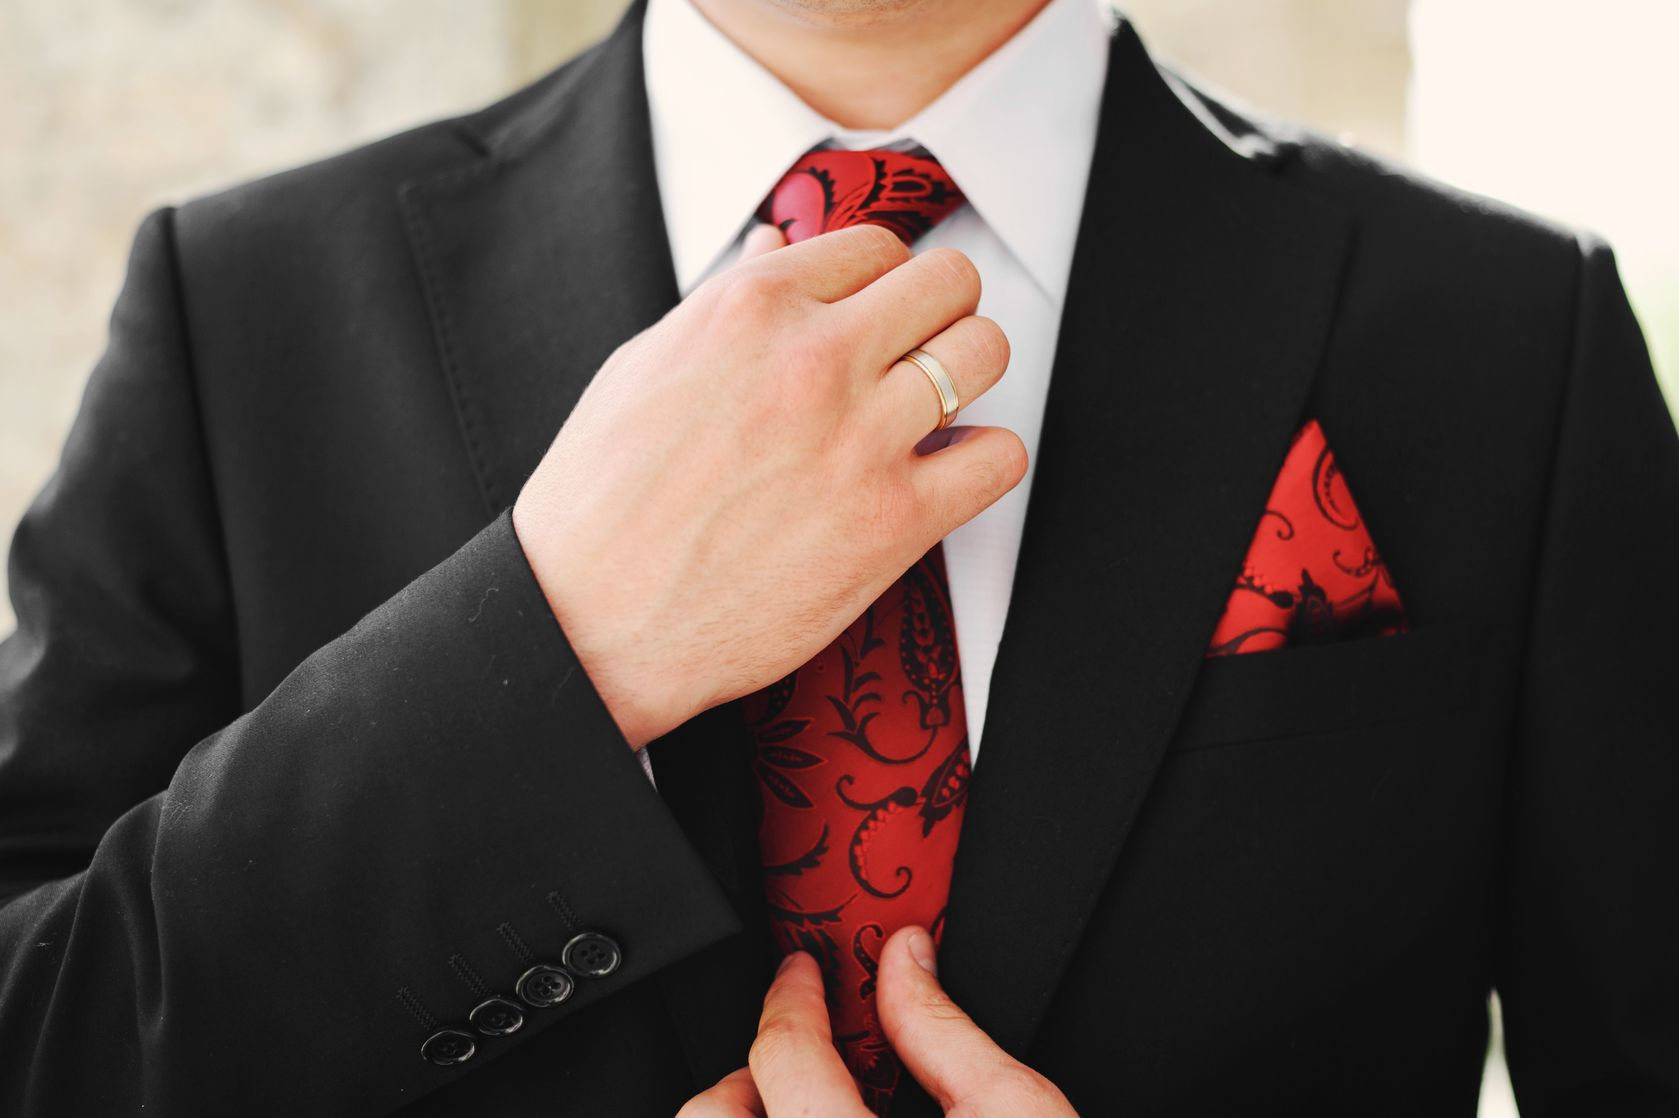 Outdoor Wedding Attire Guide: What To Wear For Every Dress Code